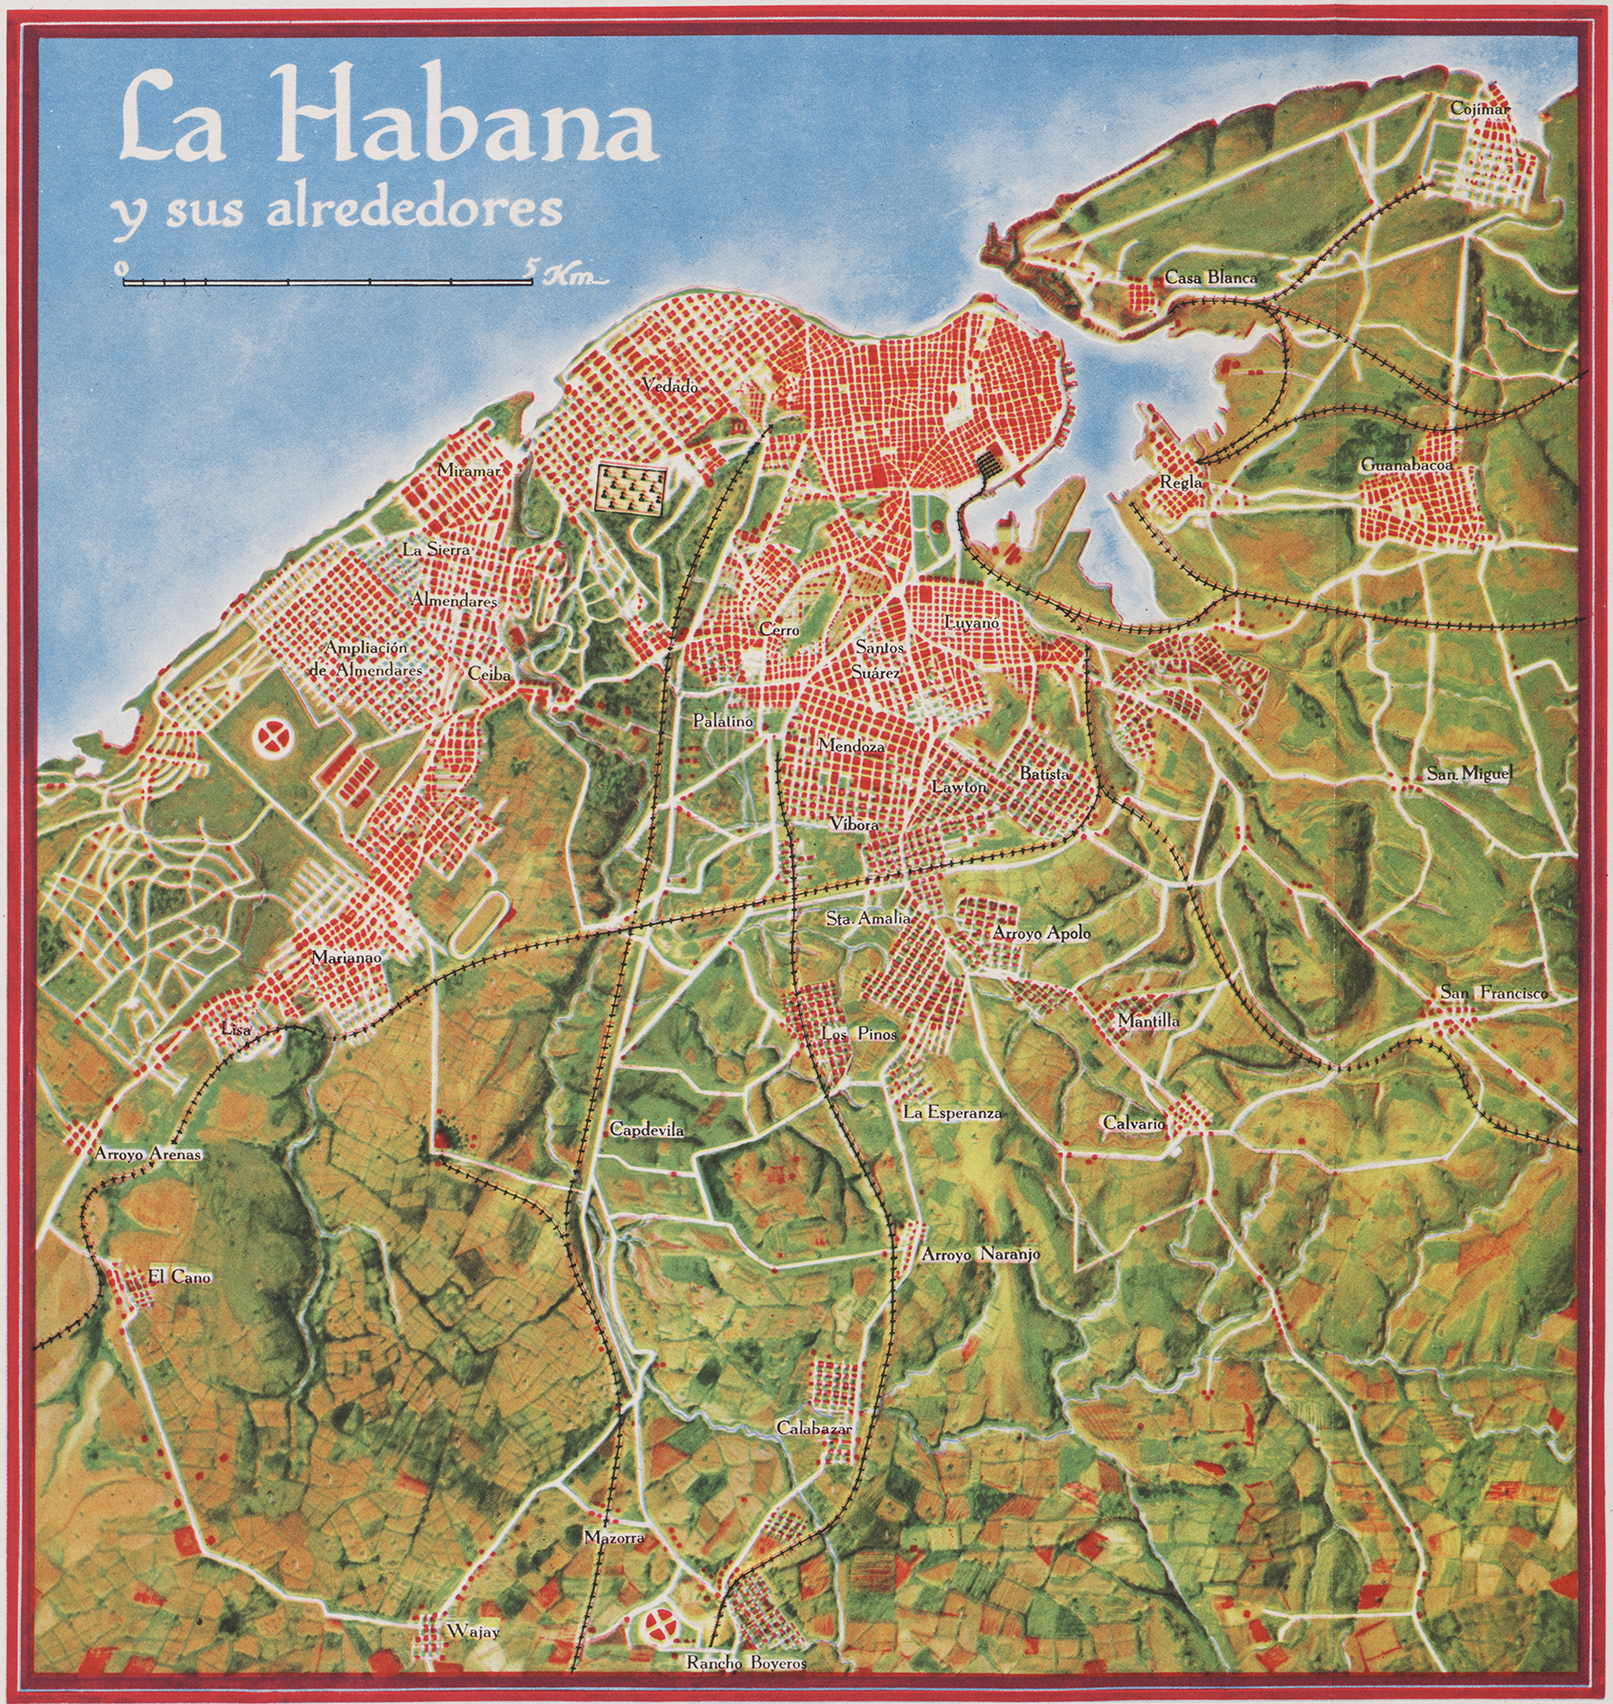 Cuba Maps Making Maps DIY Cartography - Vintage map of cuba